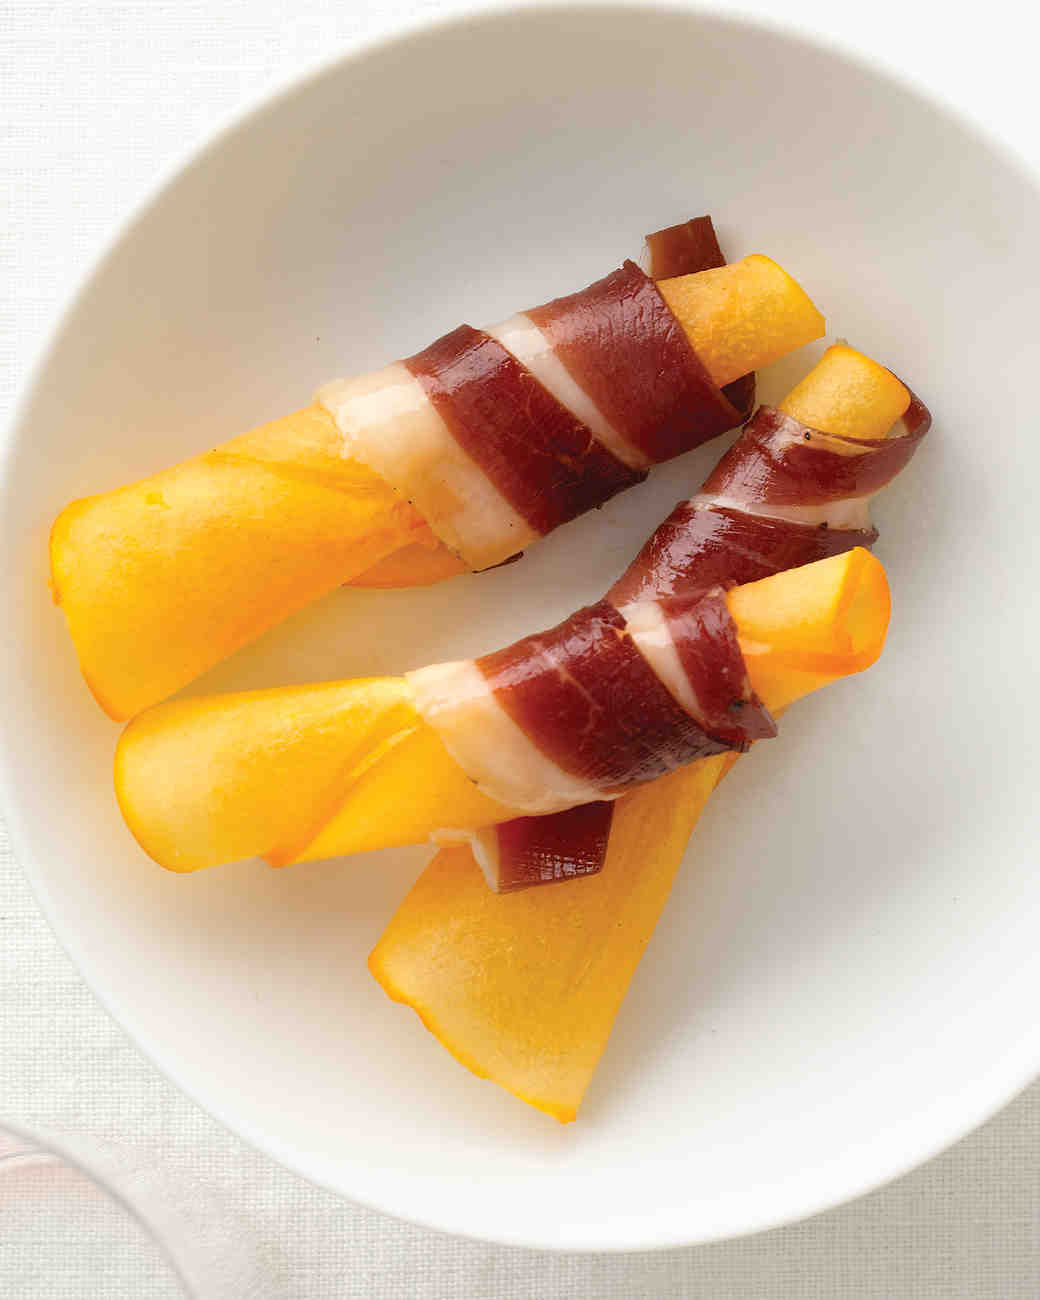 Persimmon Wrapped with Duck Prosciutto